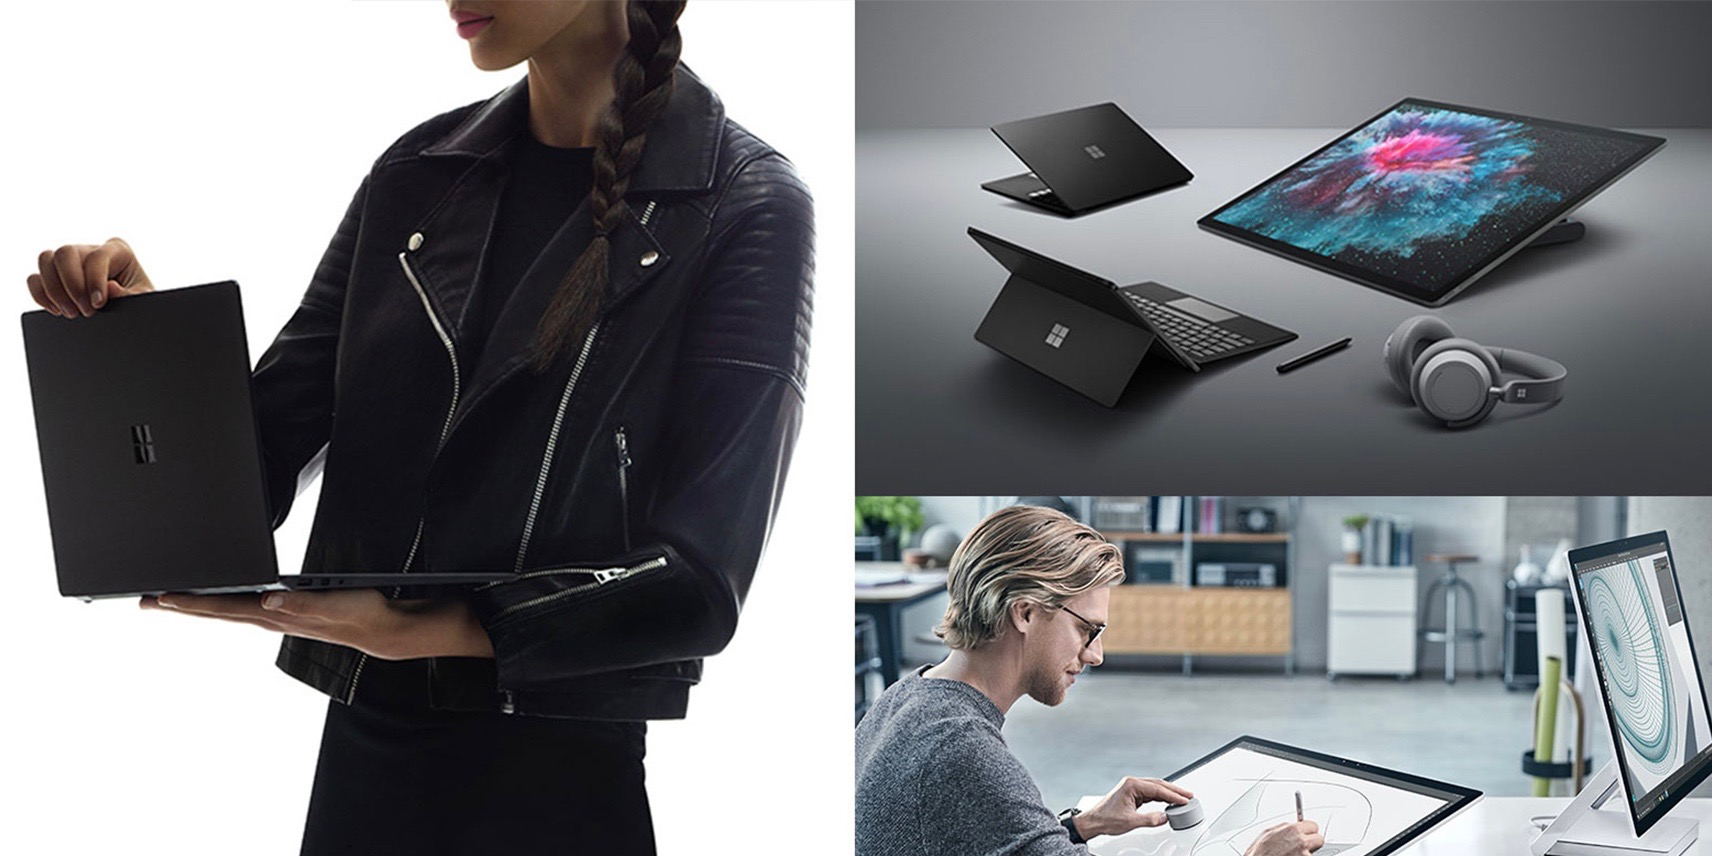 As Apple preps new iPad Pros & low-cost MacBook, Microsoft unveils latest Surface products